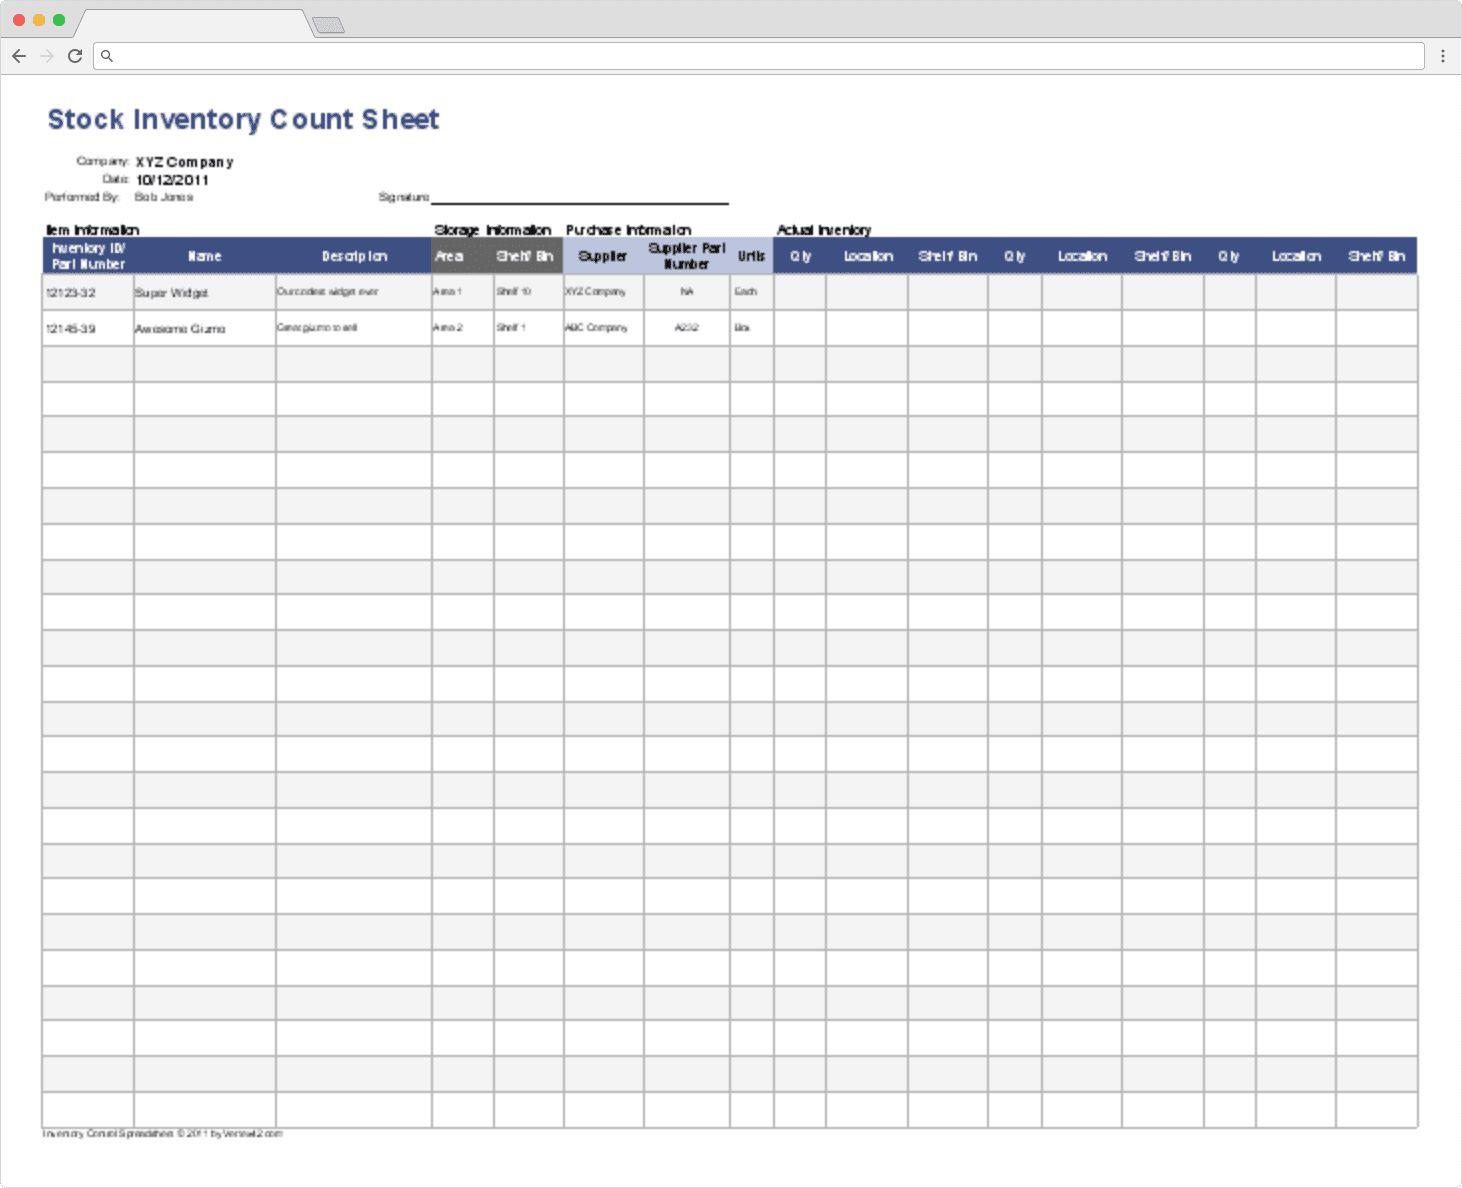 004 Dreaded Excel Inventory Template With Formula Image  Formulas Free Uk PdfFull